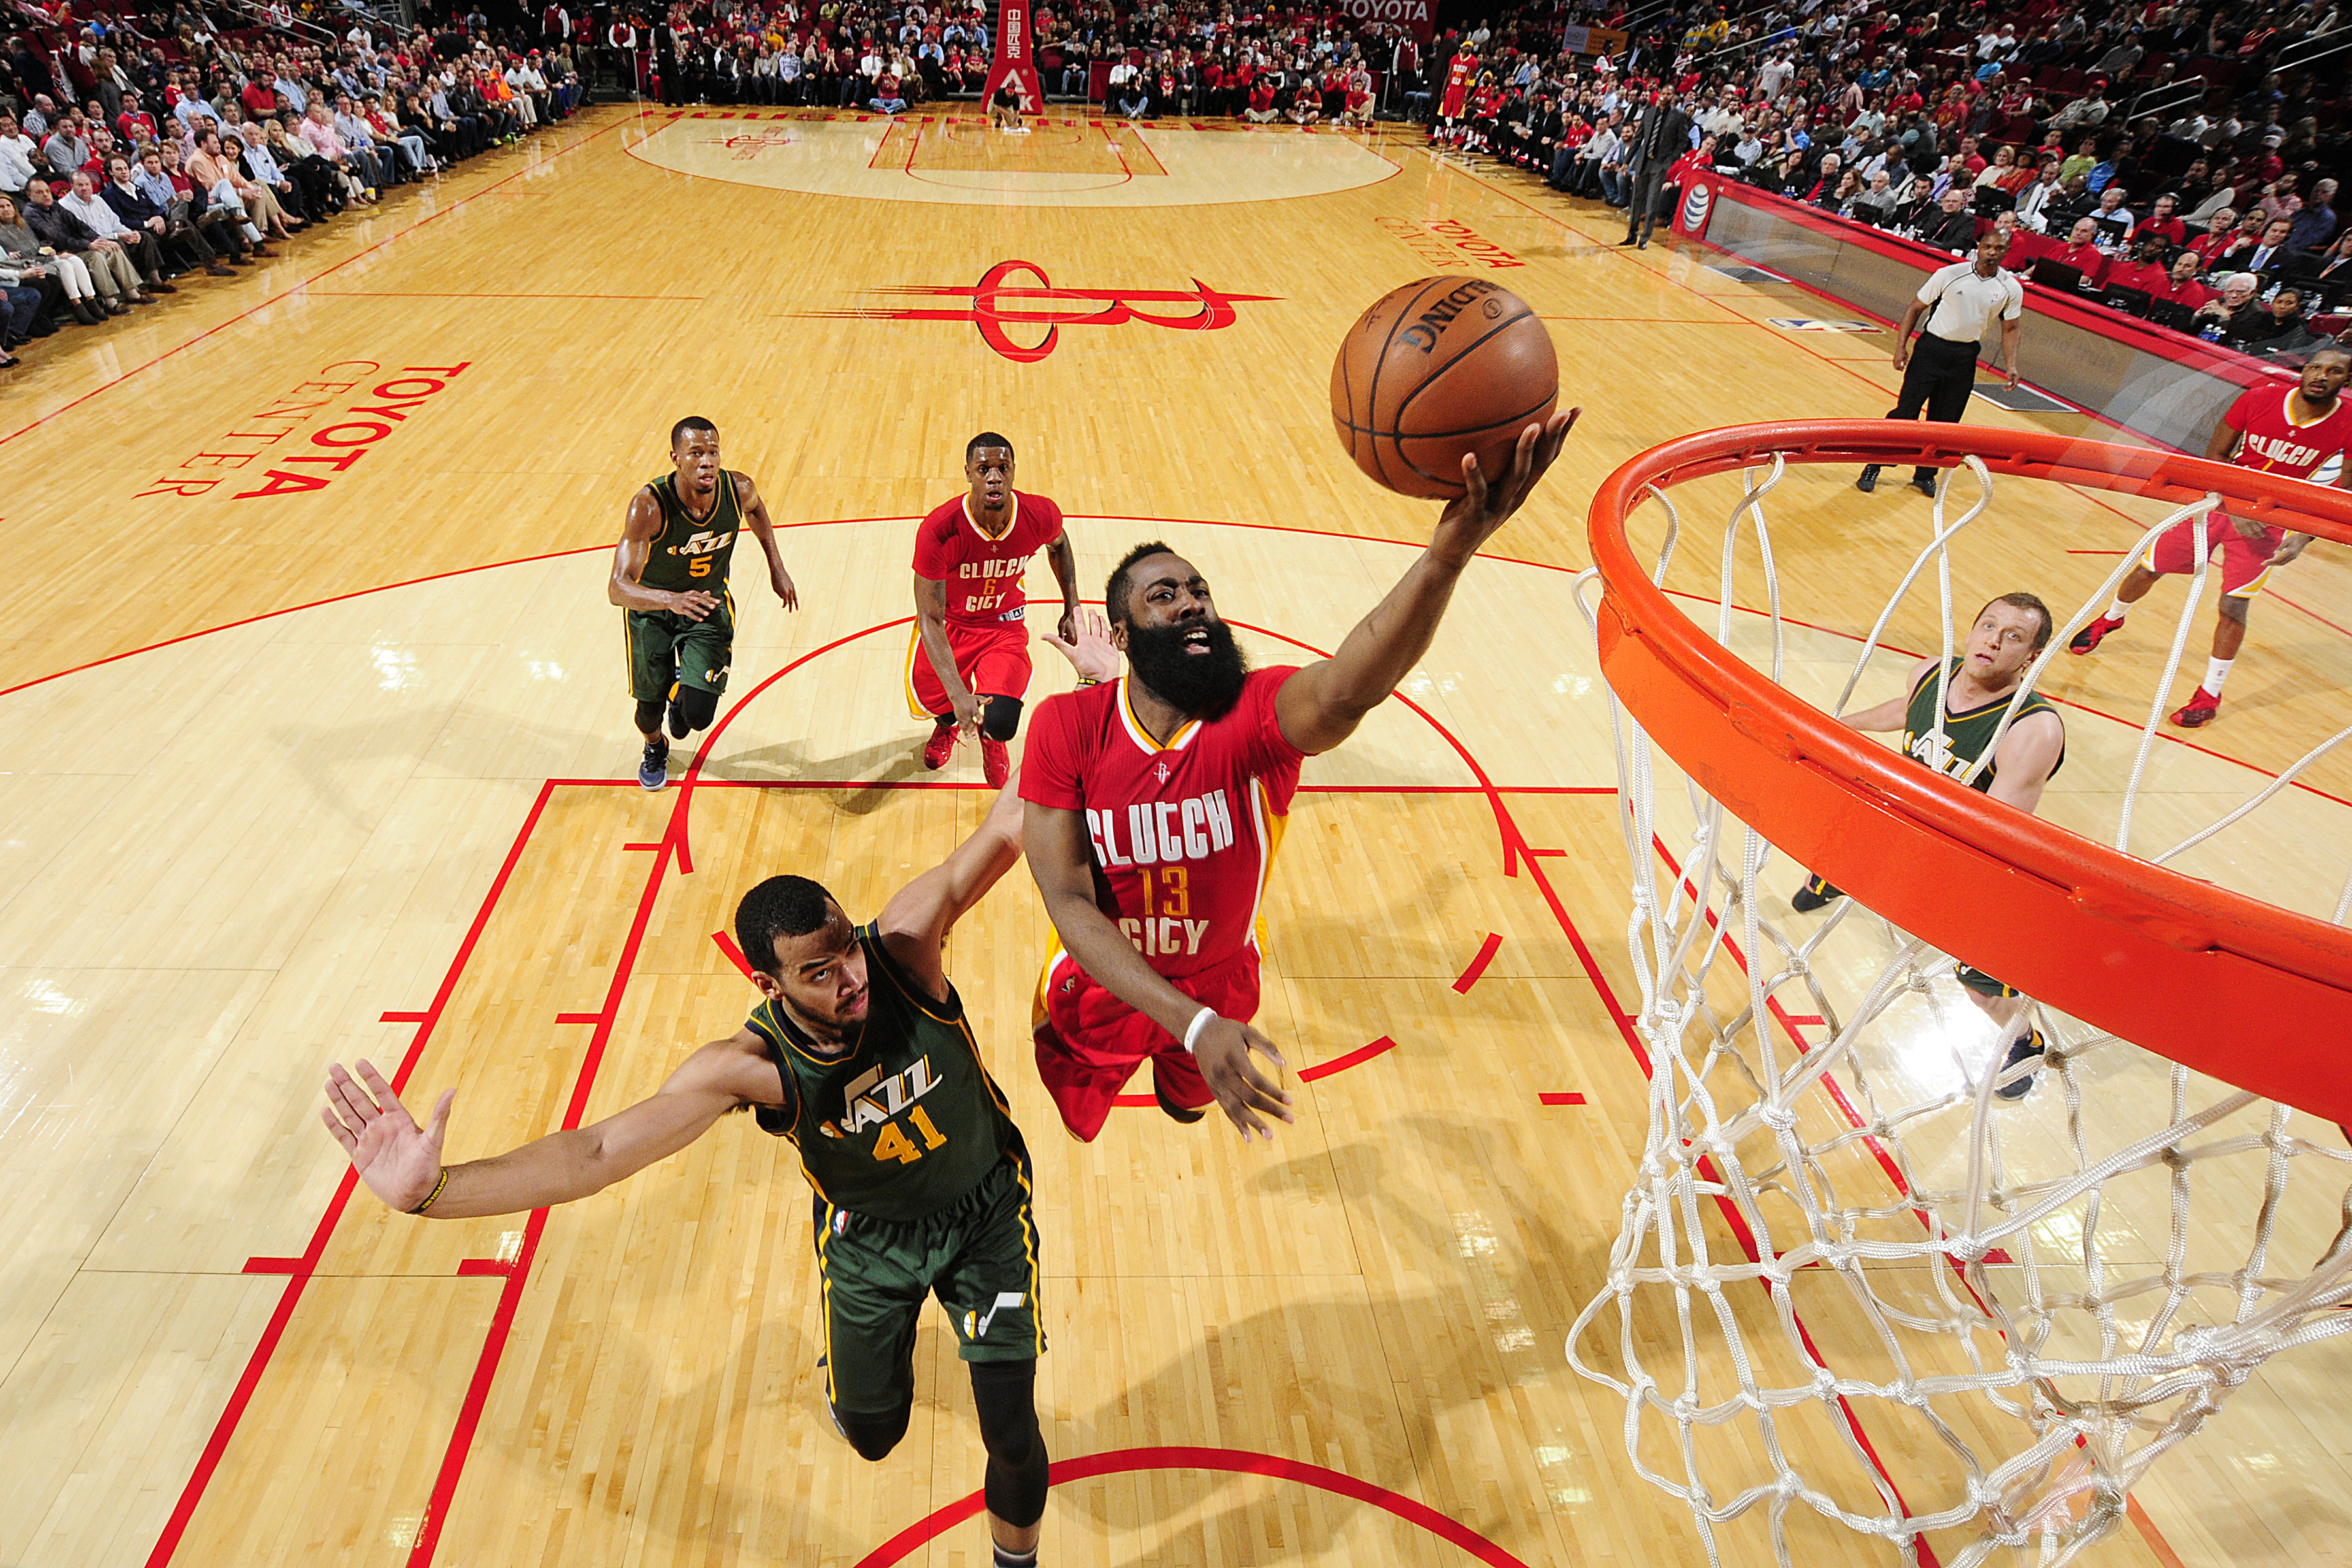 HOUSTON, TX - JANUARY 7:  James Harden #13 of the Houston Rockets shoots the ball against the Utah Jazz on January 7, 2016 at the Toyota Center in Houston, Texas. (Photo by Bill Baptist/NBAE via Getty Images)